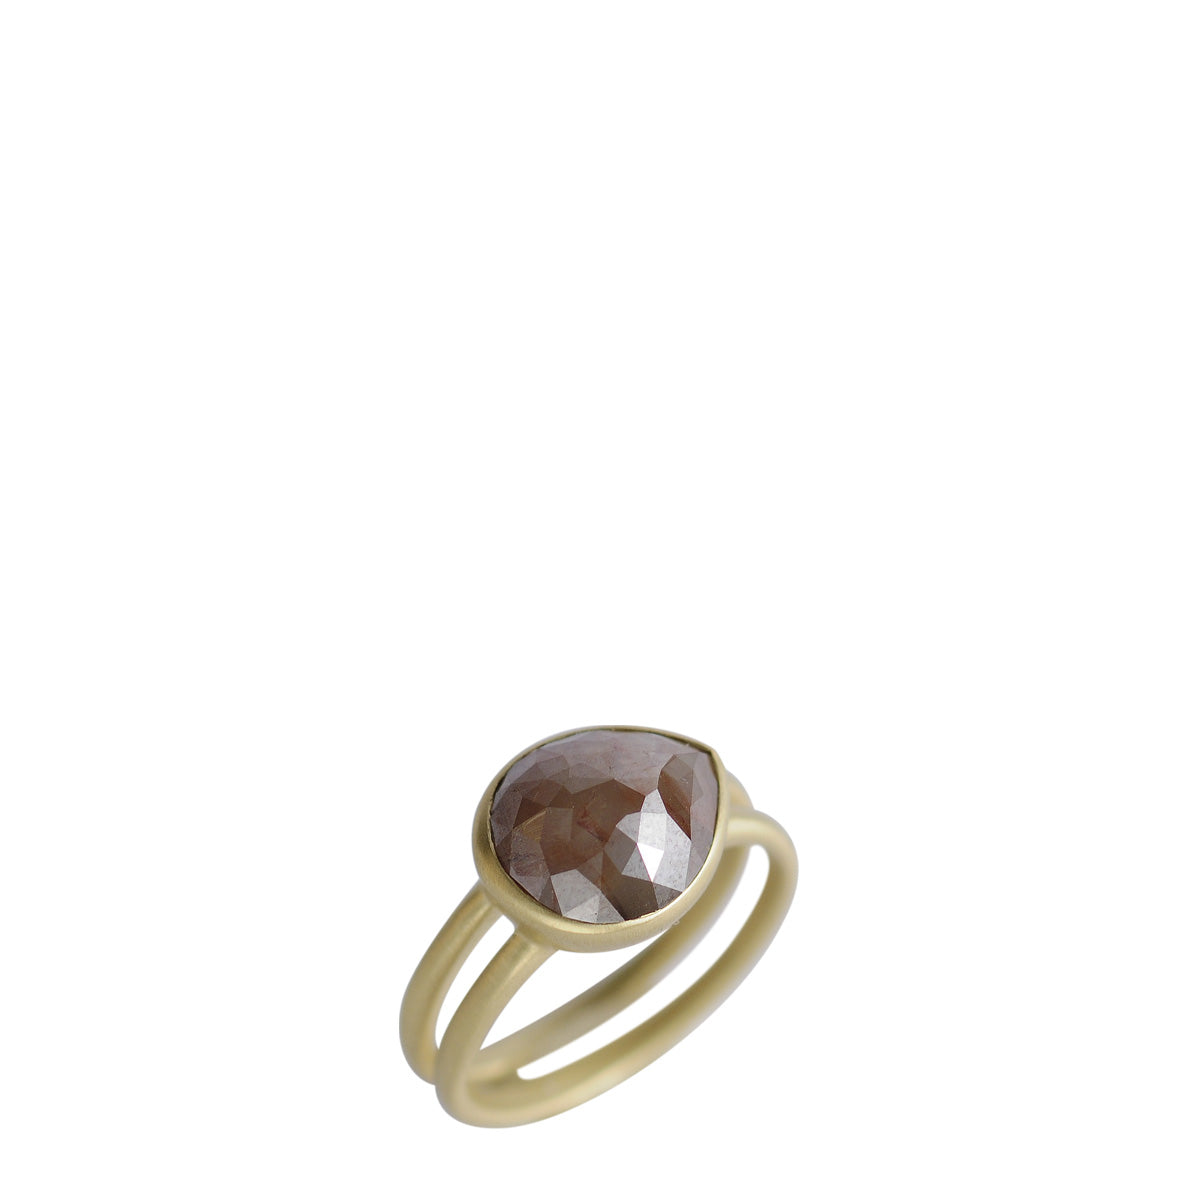 18K Gold Burnt Sienna Opaque Diamond Teardrop Ring